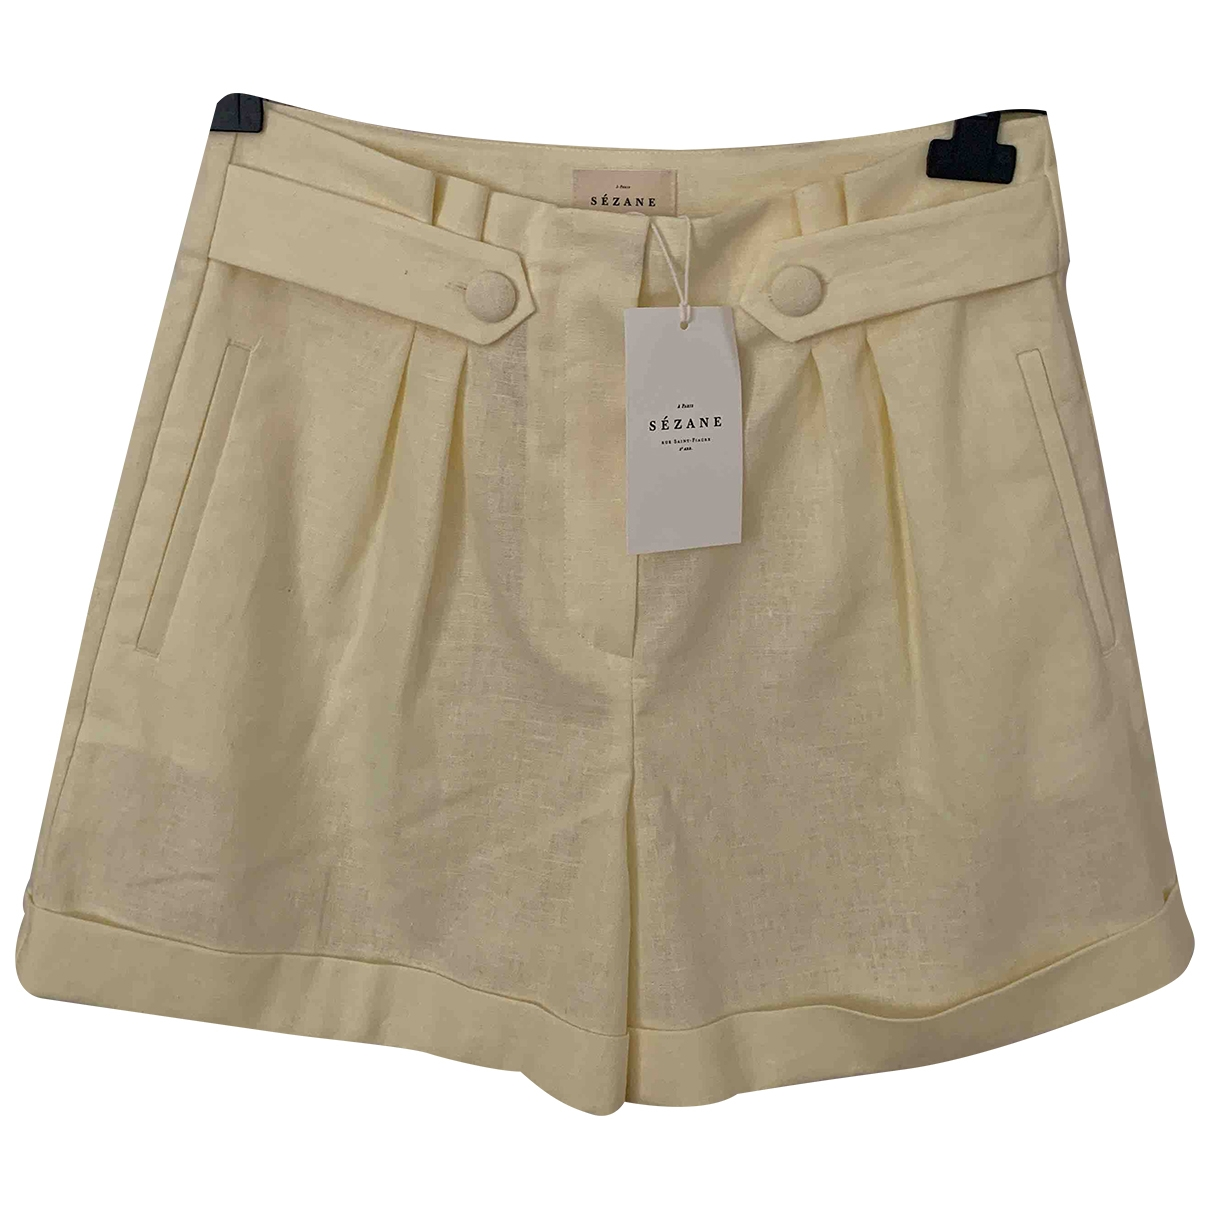 Sézane Spring Summer 2020 Ecru Cotton Shorts for Women 40 FR